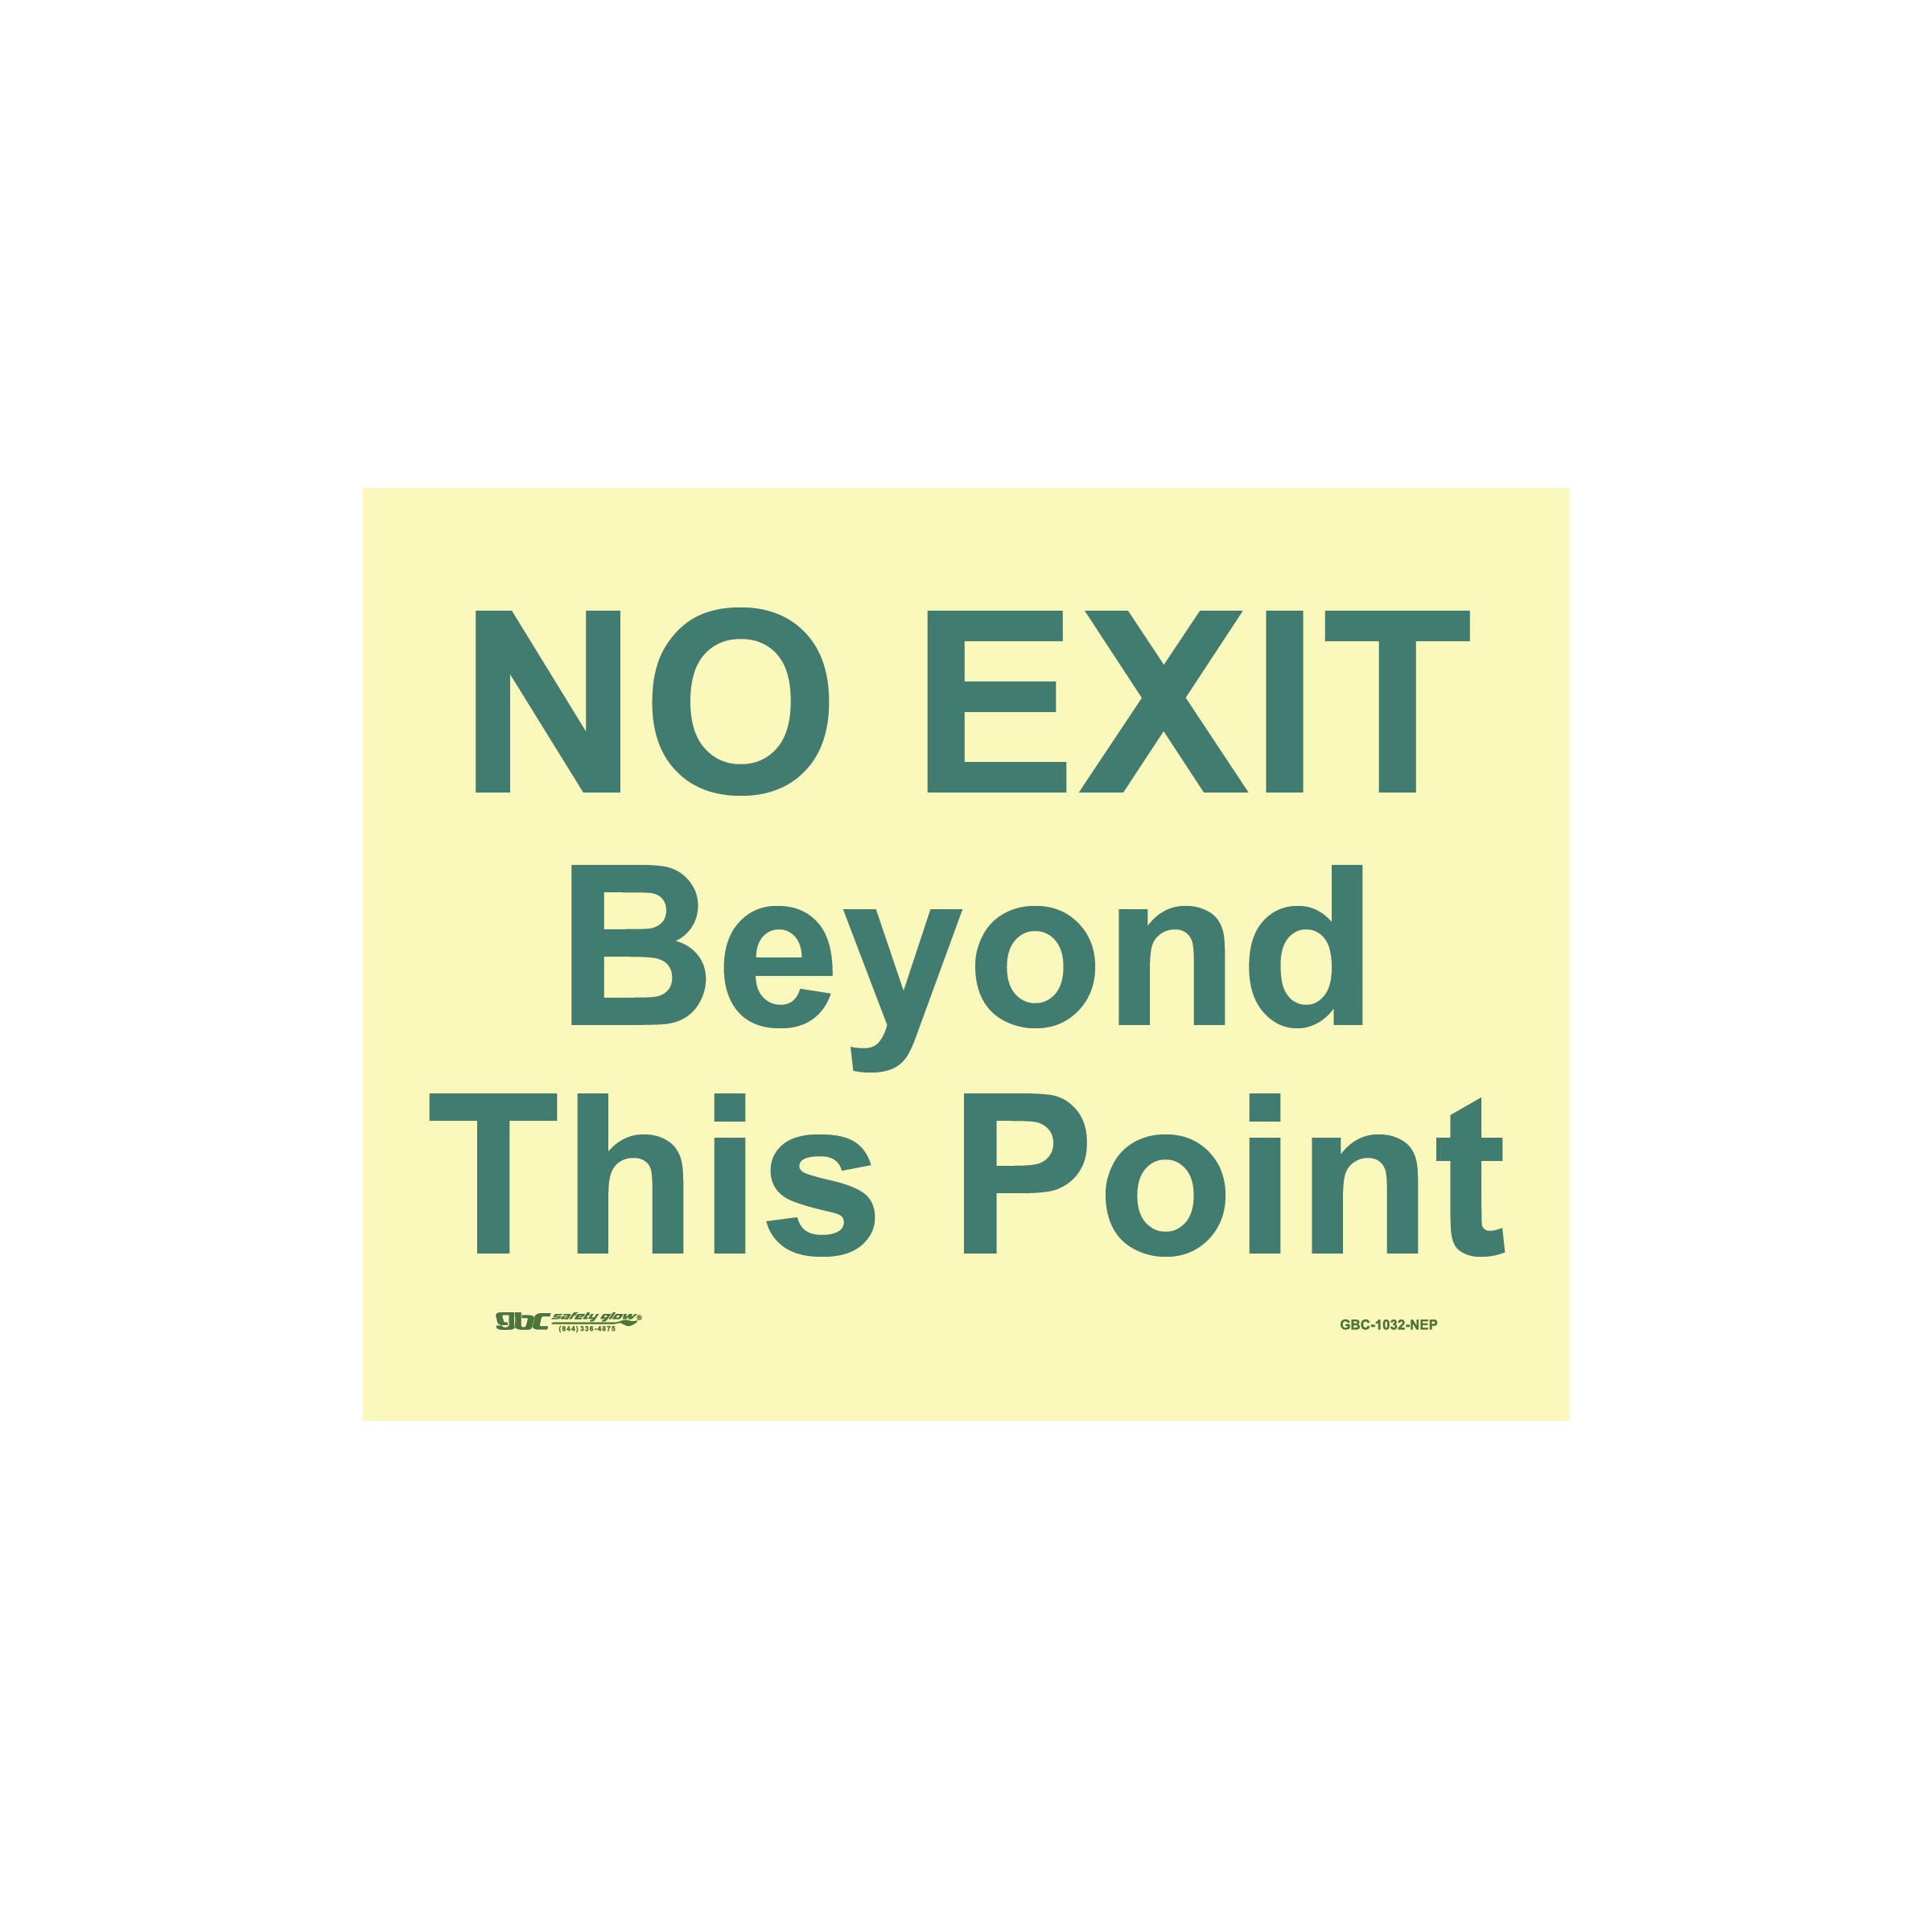 No Exit Beyond This Point Sign Image